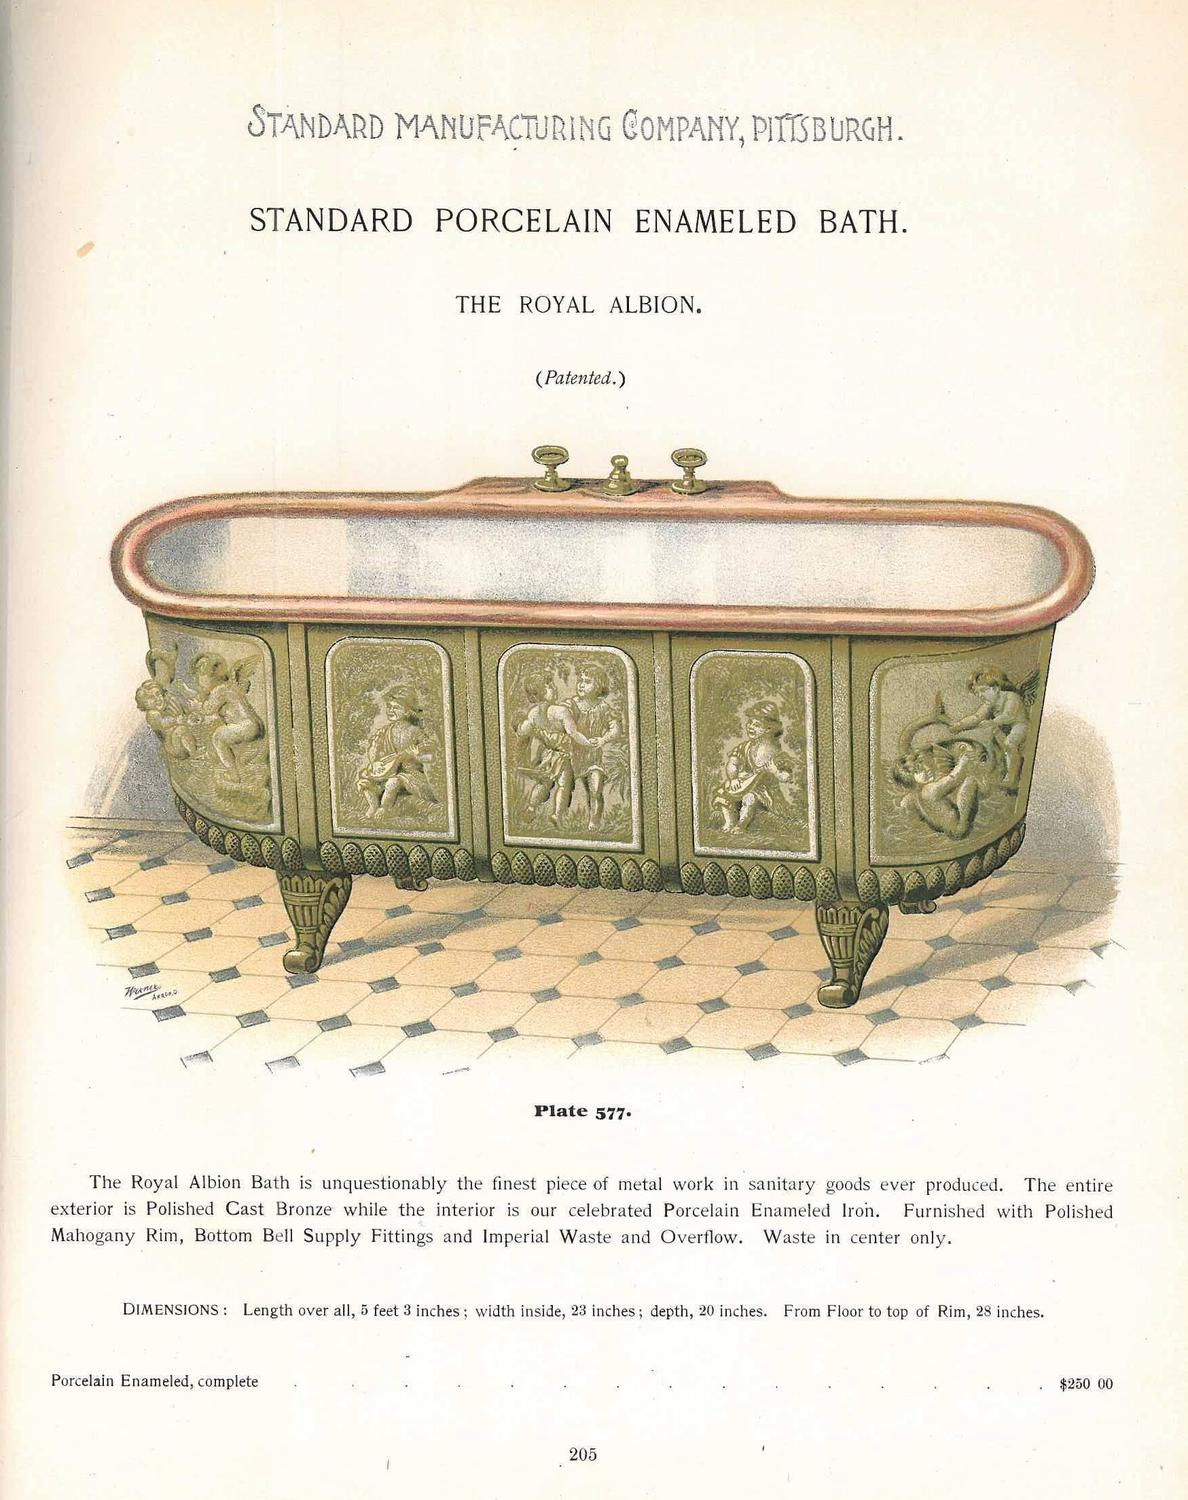 Standard Manufacturing Co Pittsburgh Catalogue of